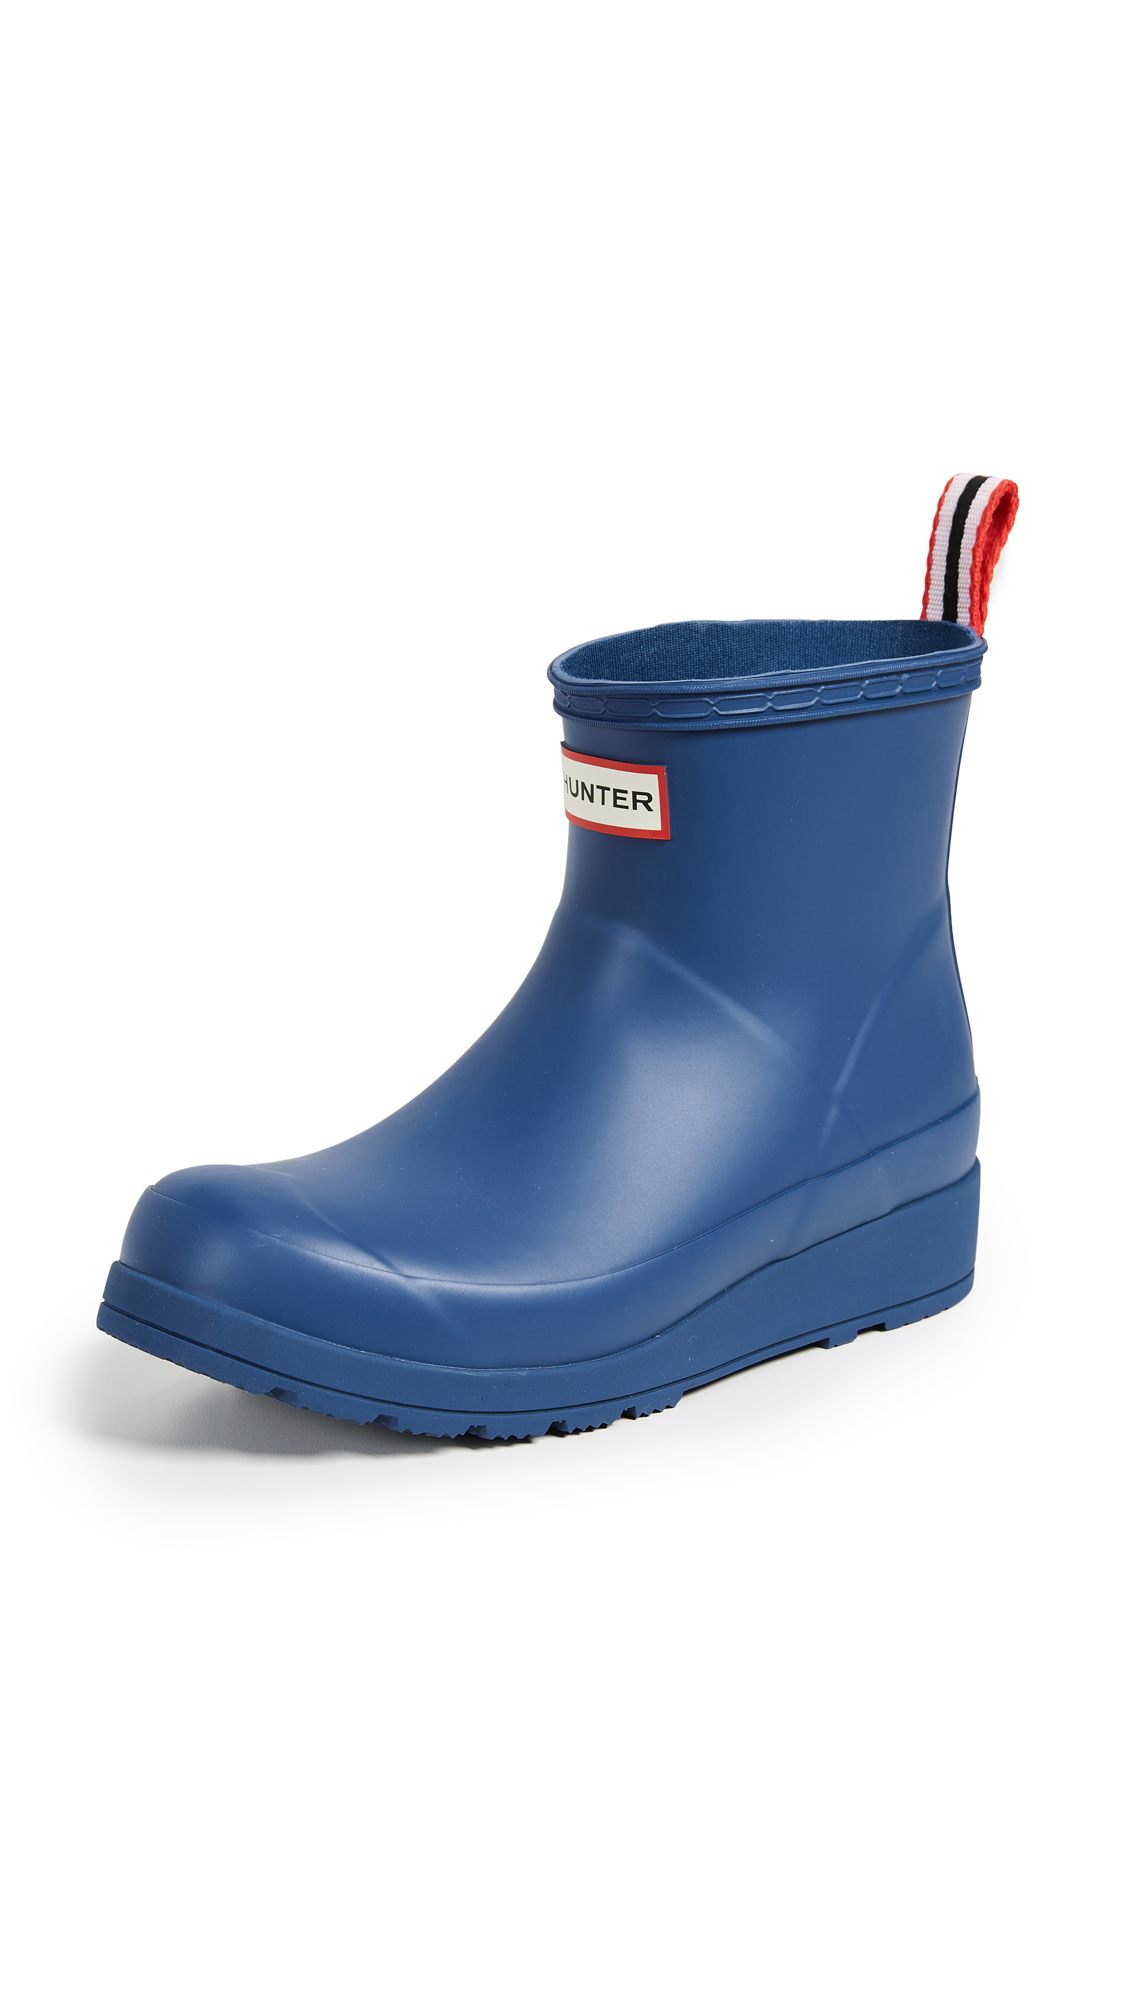 Hunter Boots Original Play Short Boots - Peak Blue